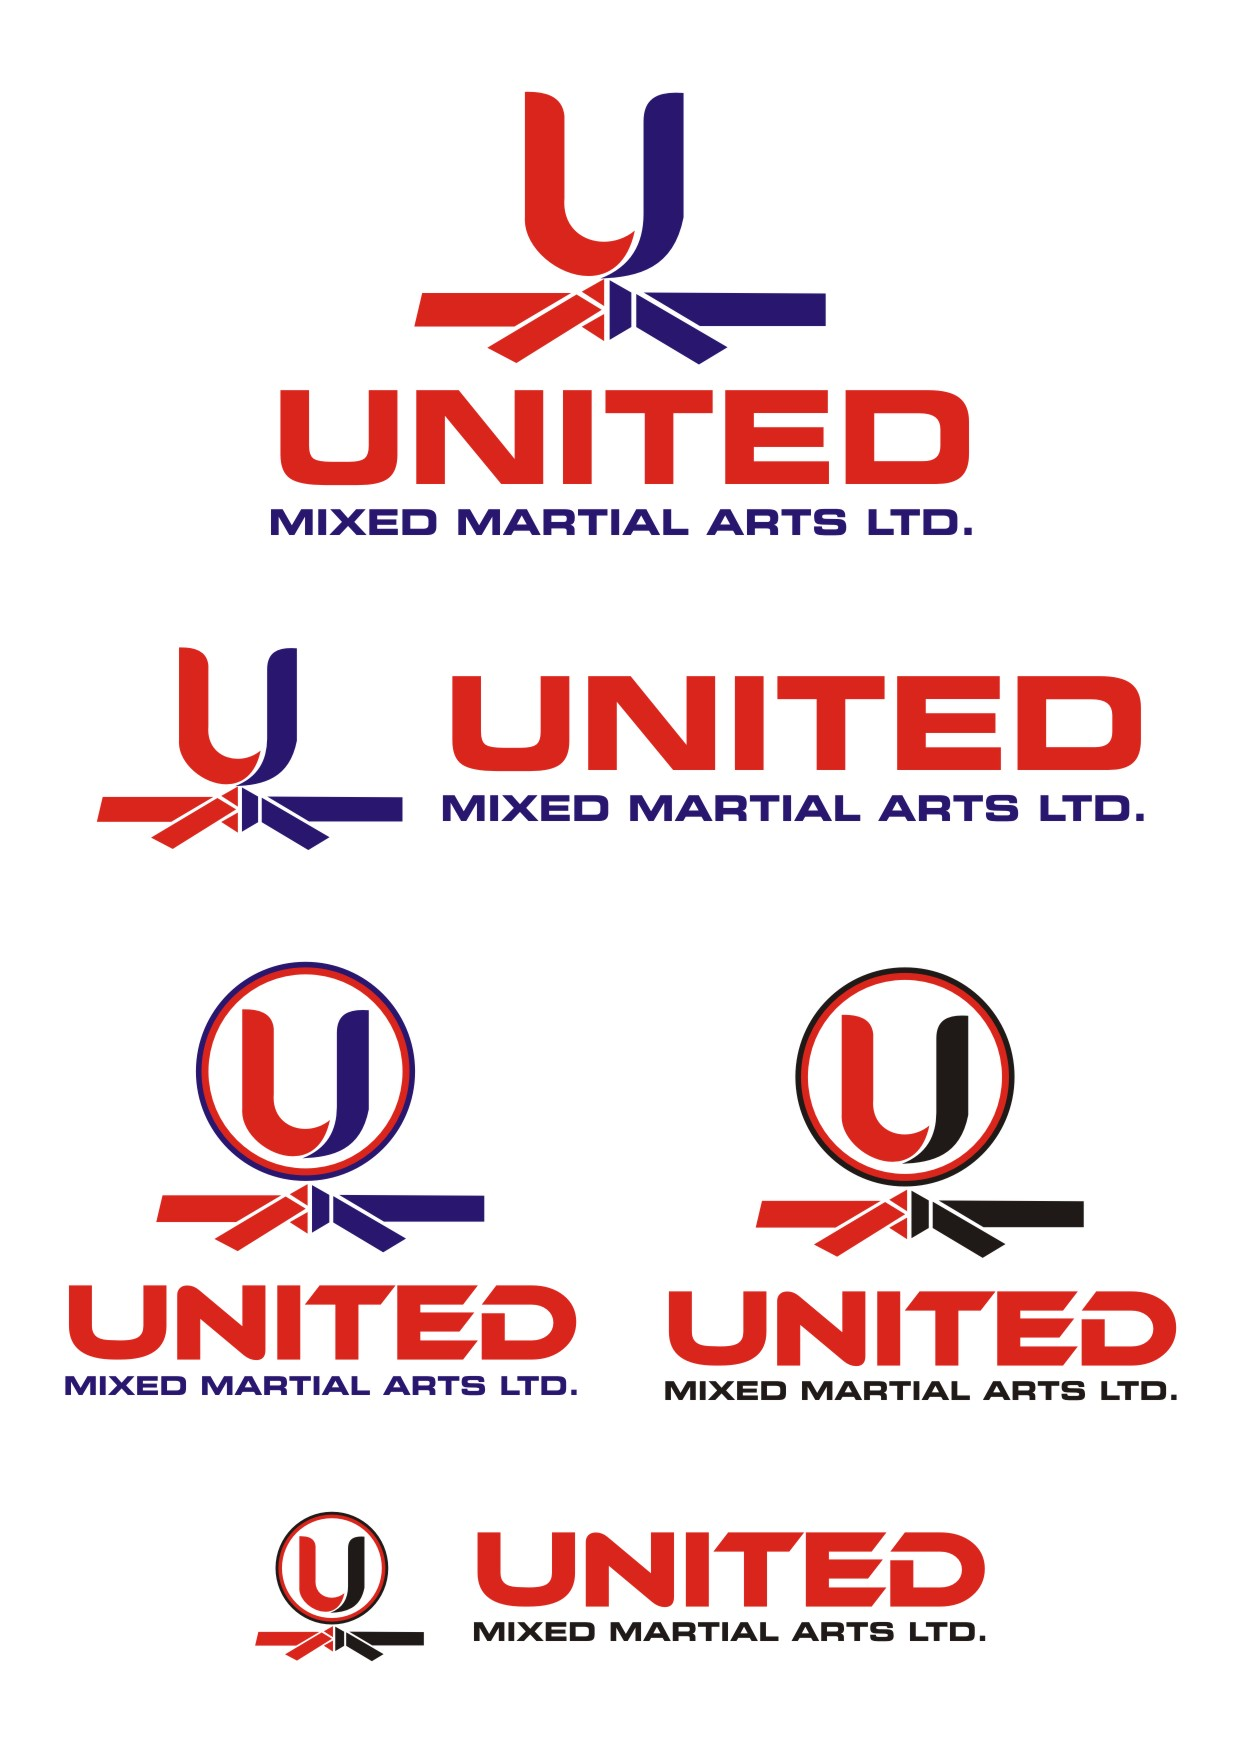 Logo Design by Spider Graphics - Entry No. 105 in the Logo Design Contest Artistic Logo Design for United Mixed Martial Arts Ltd..